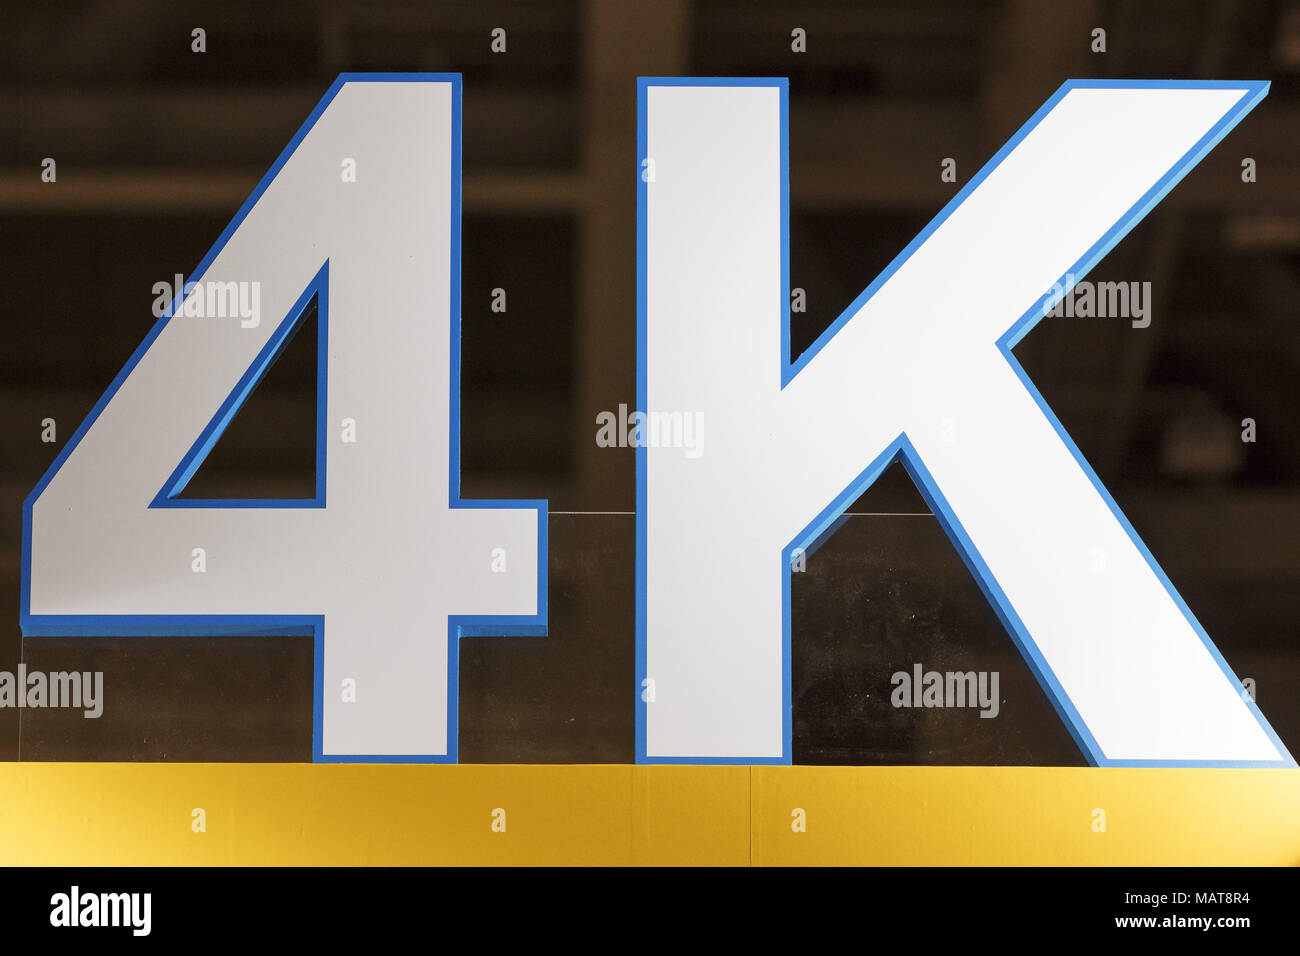 4k logo stock photos amp 4k logo stock images alamy